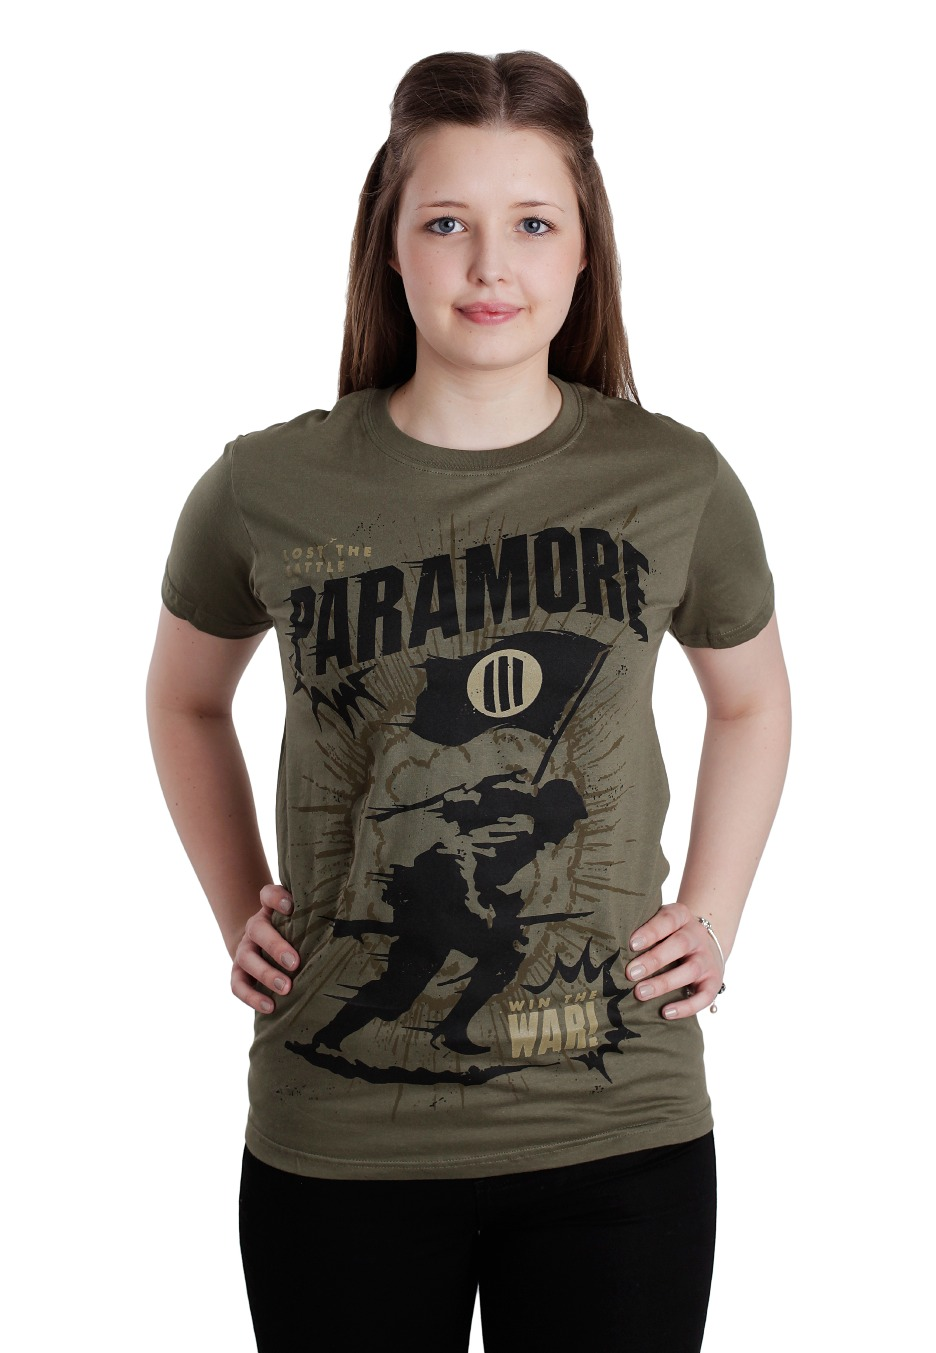 Paramore - Mine Field Military Green - T-Shirt - Official ... Paramore Nederland